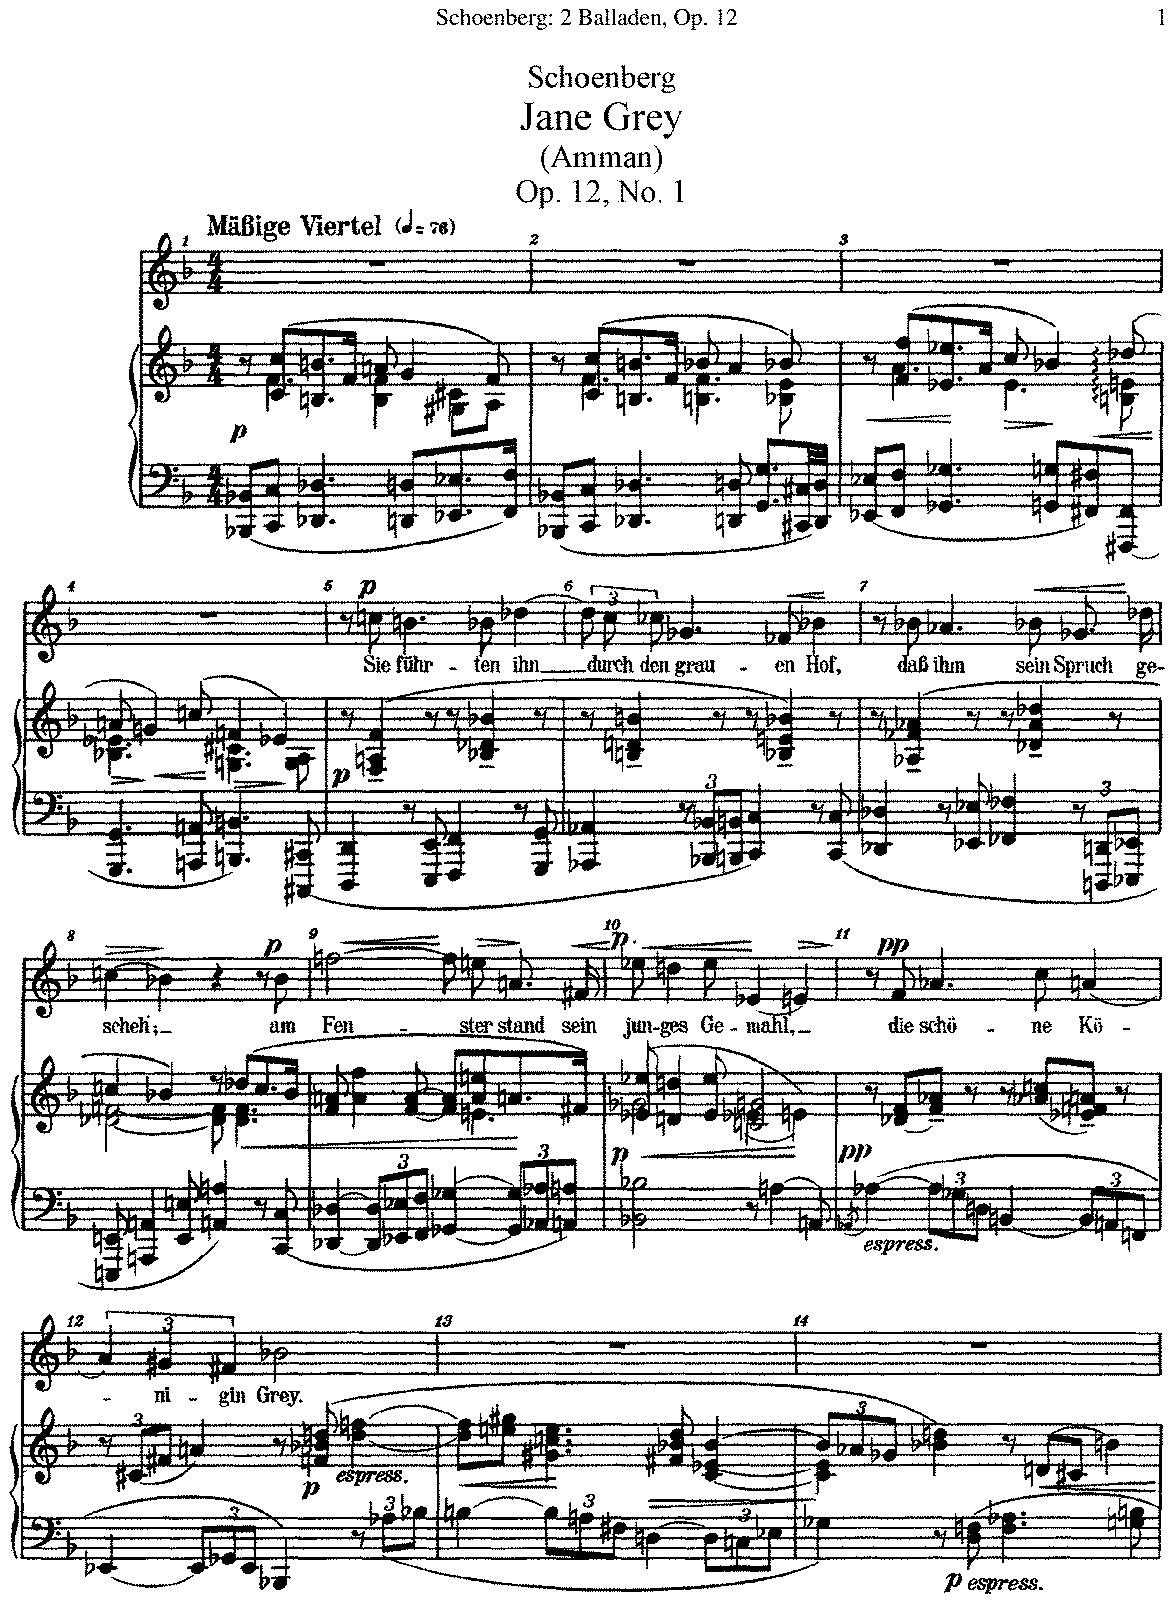 PMLP12604-Schoenberg - 2 Balladen, Op. 12 (voice and piano).pdf